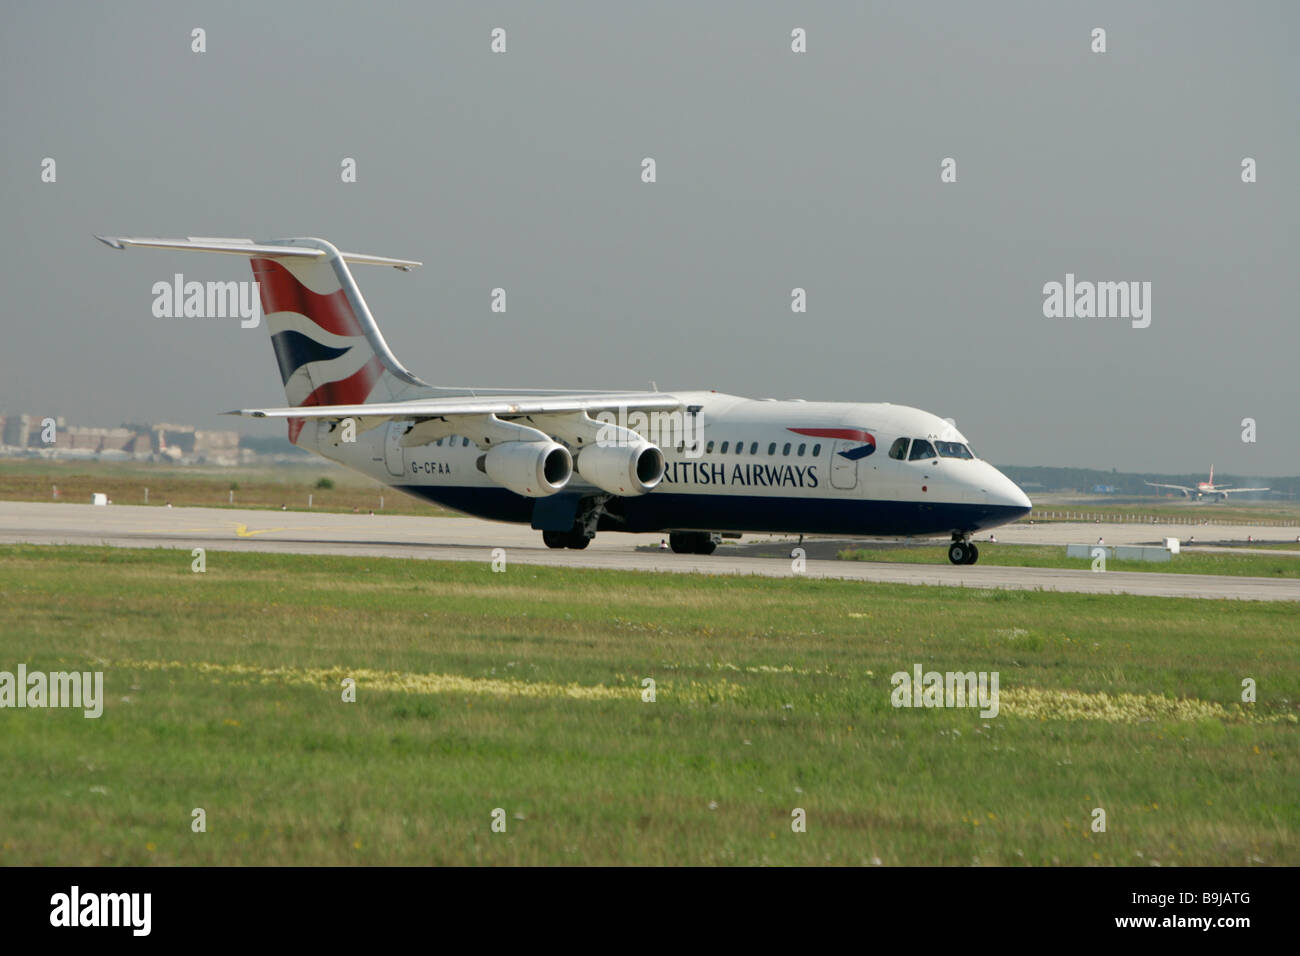 British Airways Cityliner Aero RJ 85, taking off at Frankfurt Airport, Hesse, Germany, Europe - Stock Image